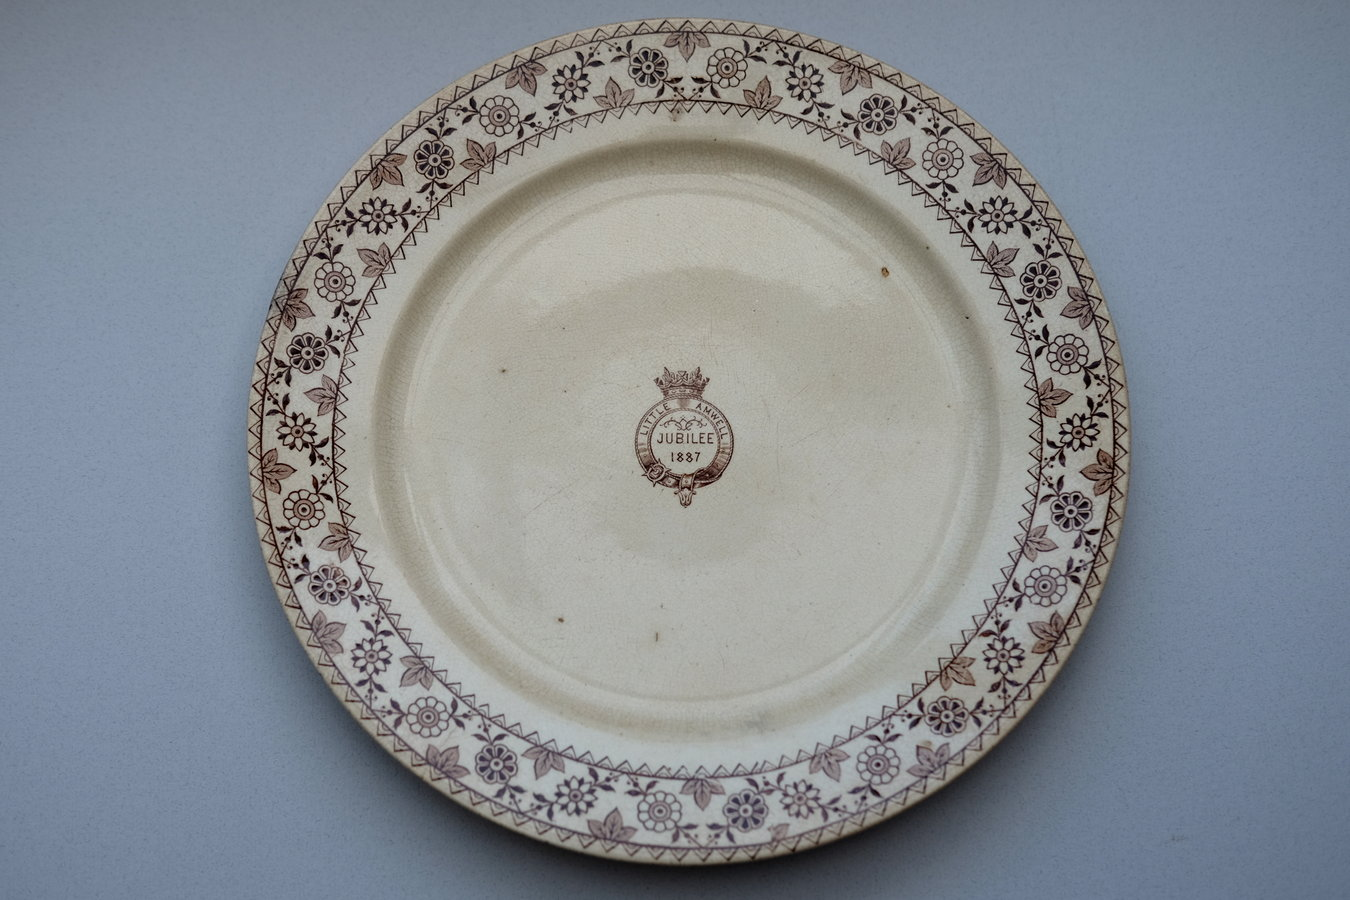 Little Amwell Golden Jubilee Plate